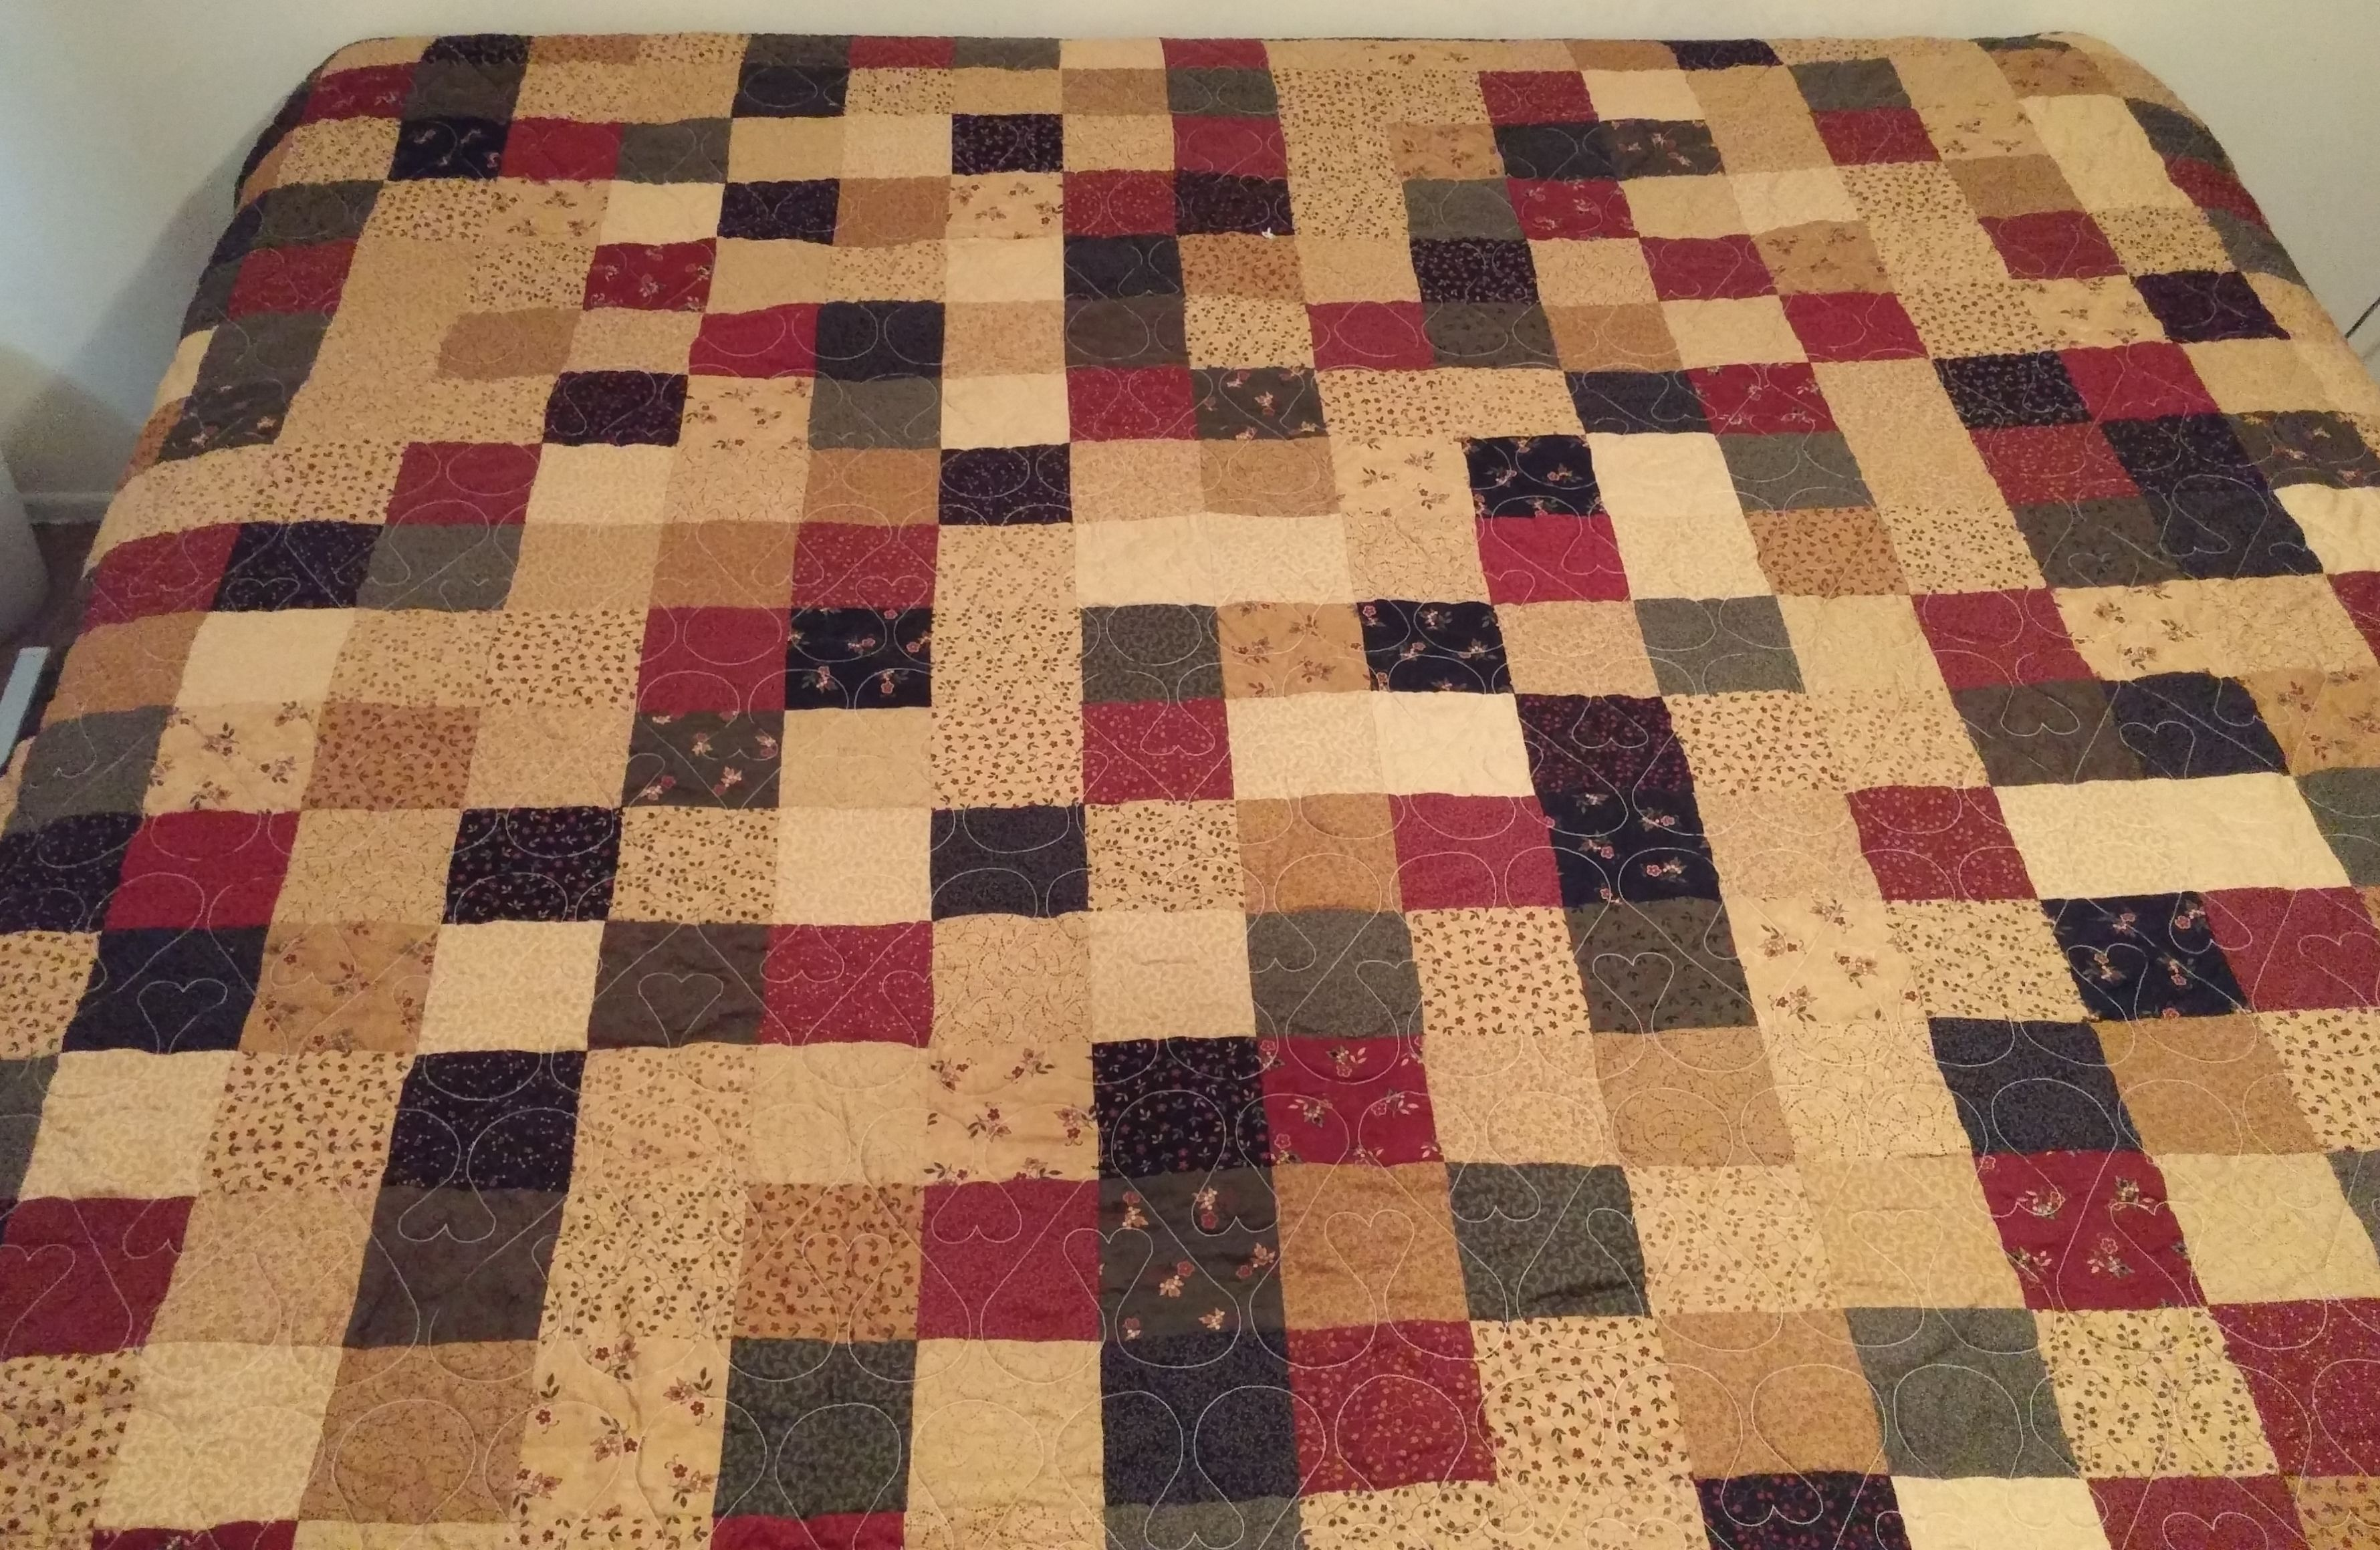 Queen size made with 5 inch squares. Quilted with Heart with in a heart quilting pattern.